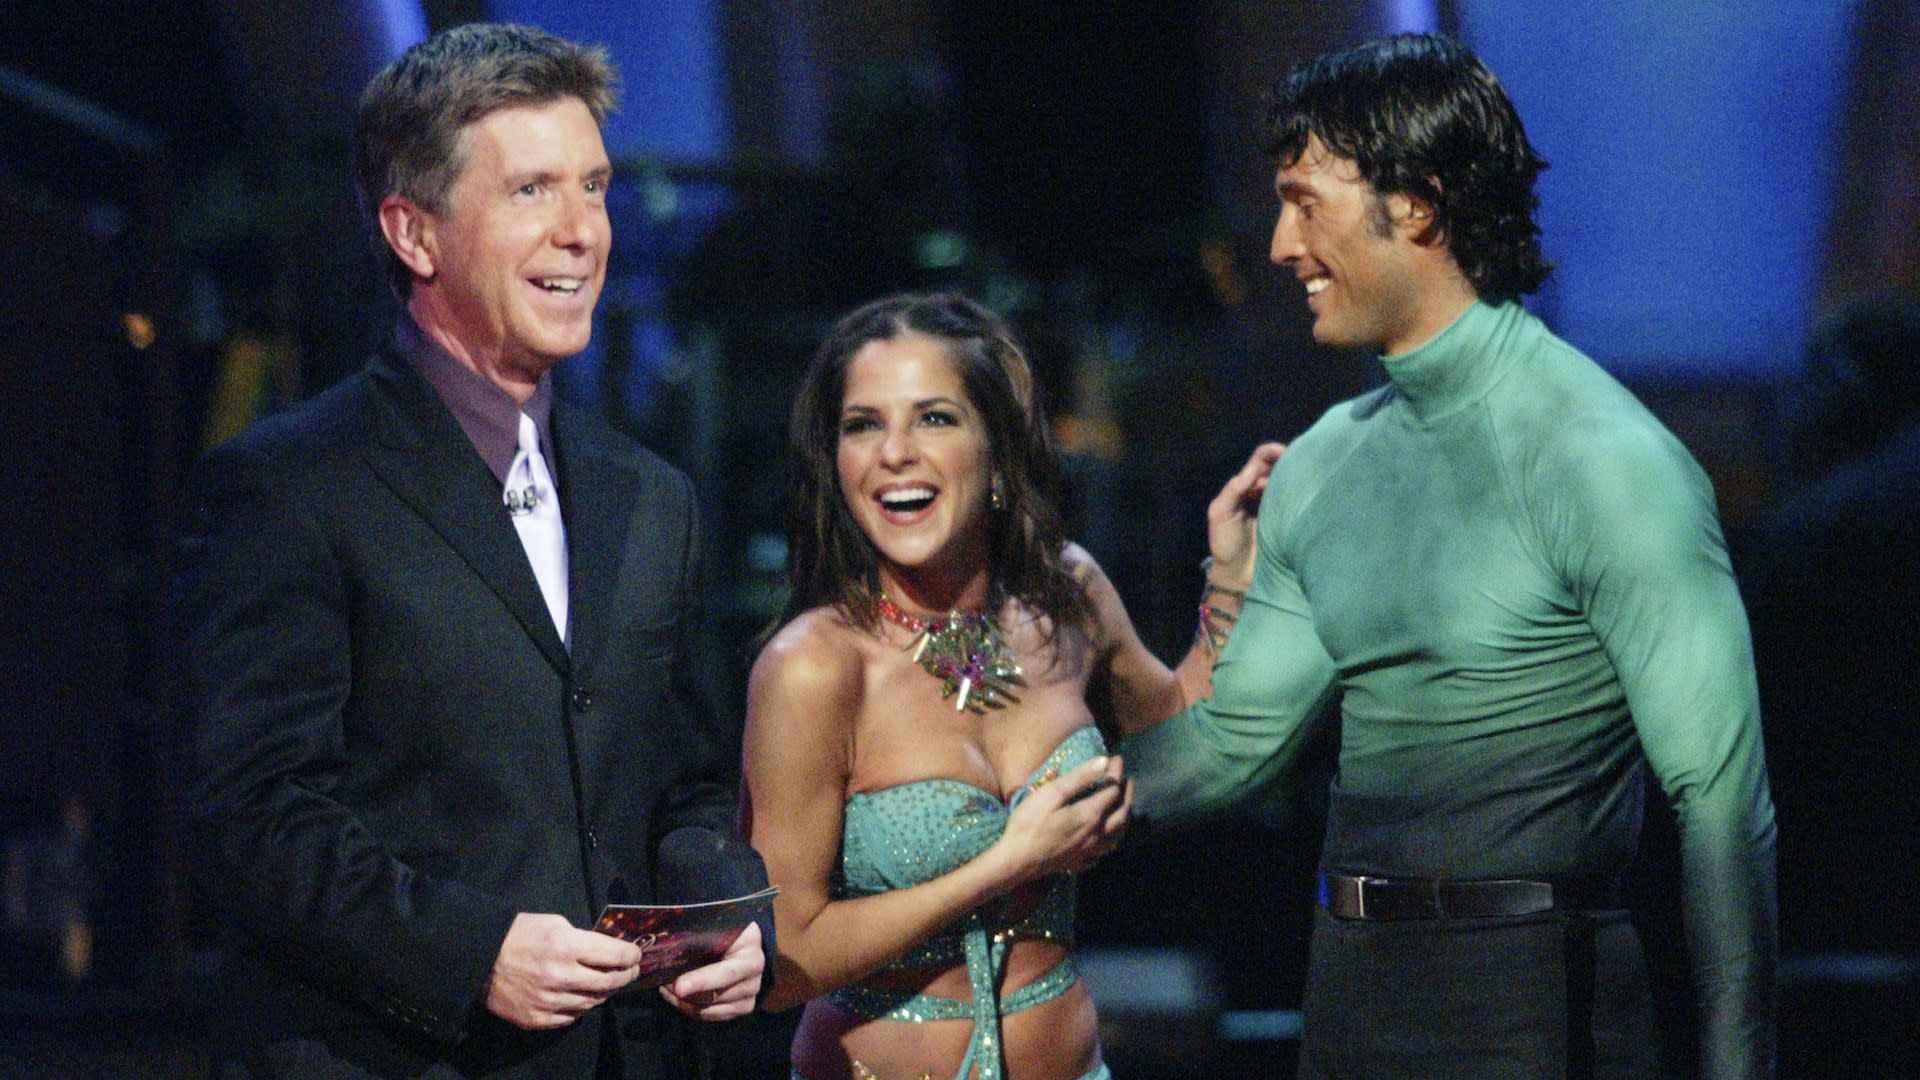 Wardrobe malfunction and controversial winner — how 'Dancing With the Stars' began with a bang 15 years ago